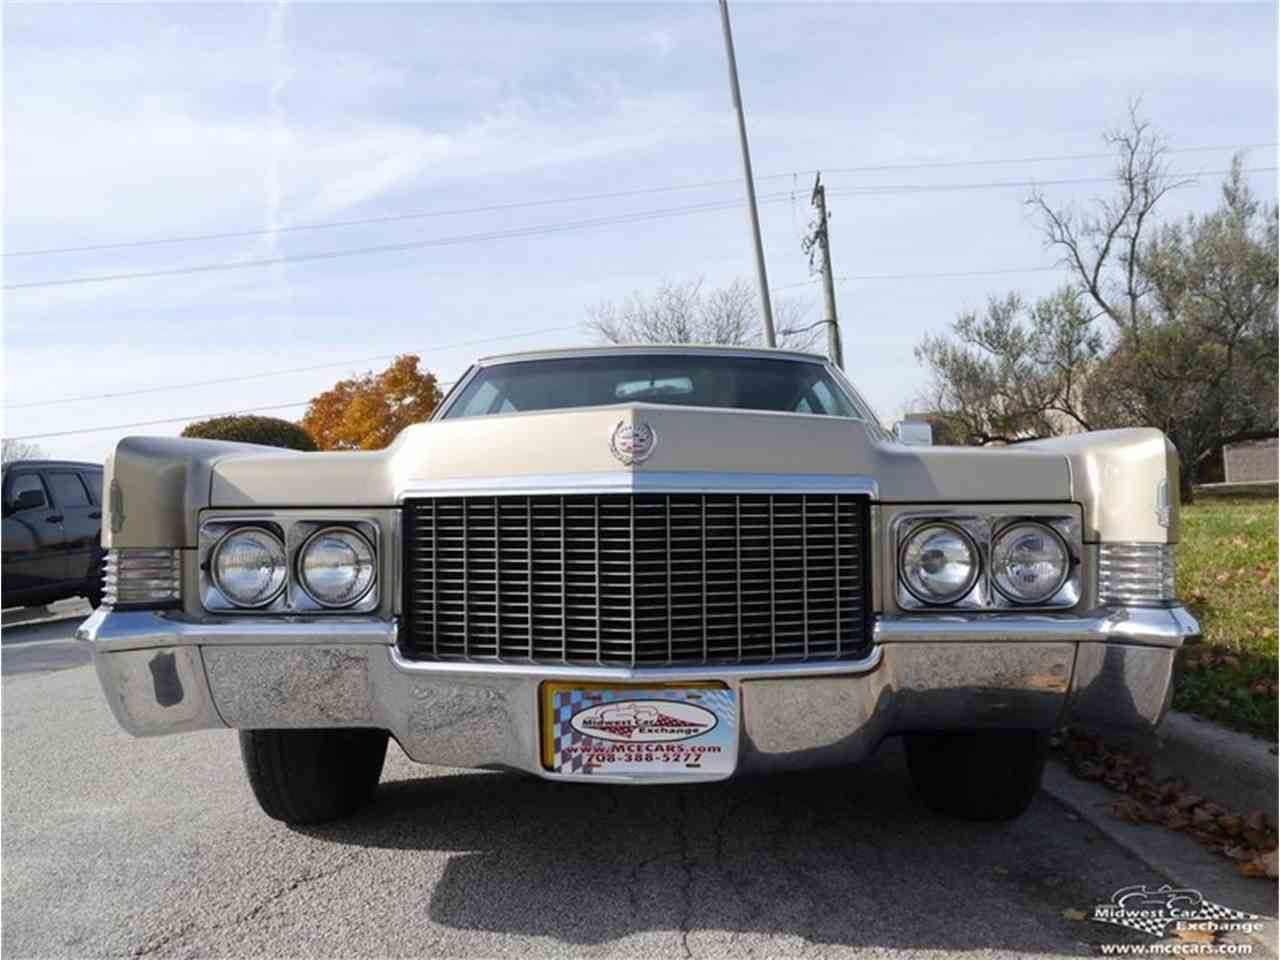 Large Picture of Classic 1970 Cadillac Fleetwood Brougham located in Illinois - $12,900.00 Offered by Midwest Car Exchange - M9KI